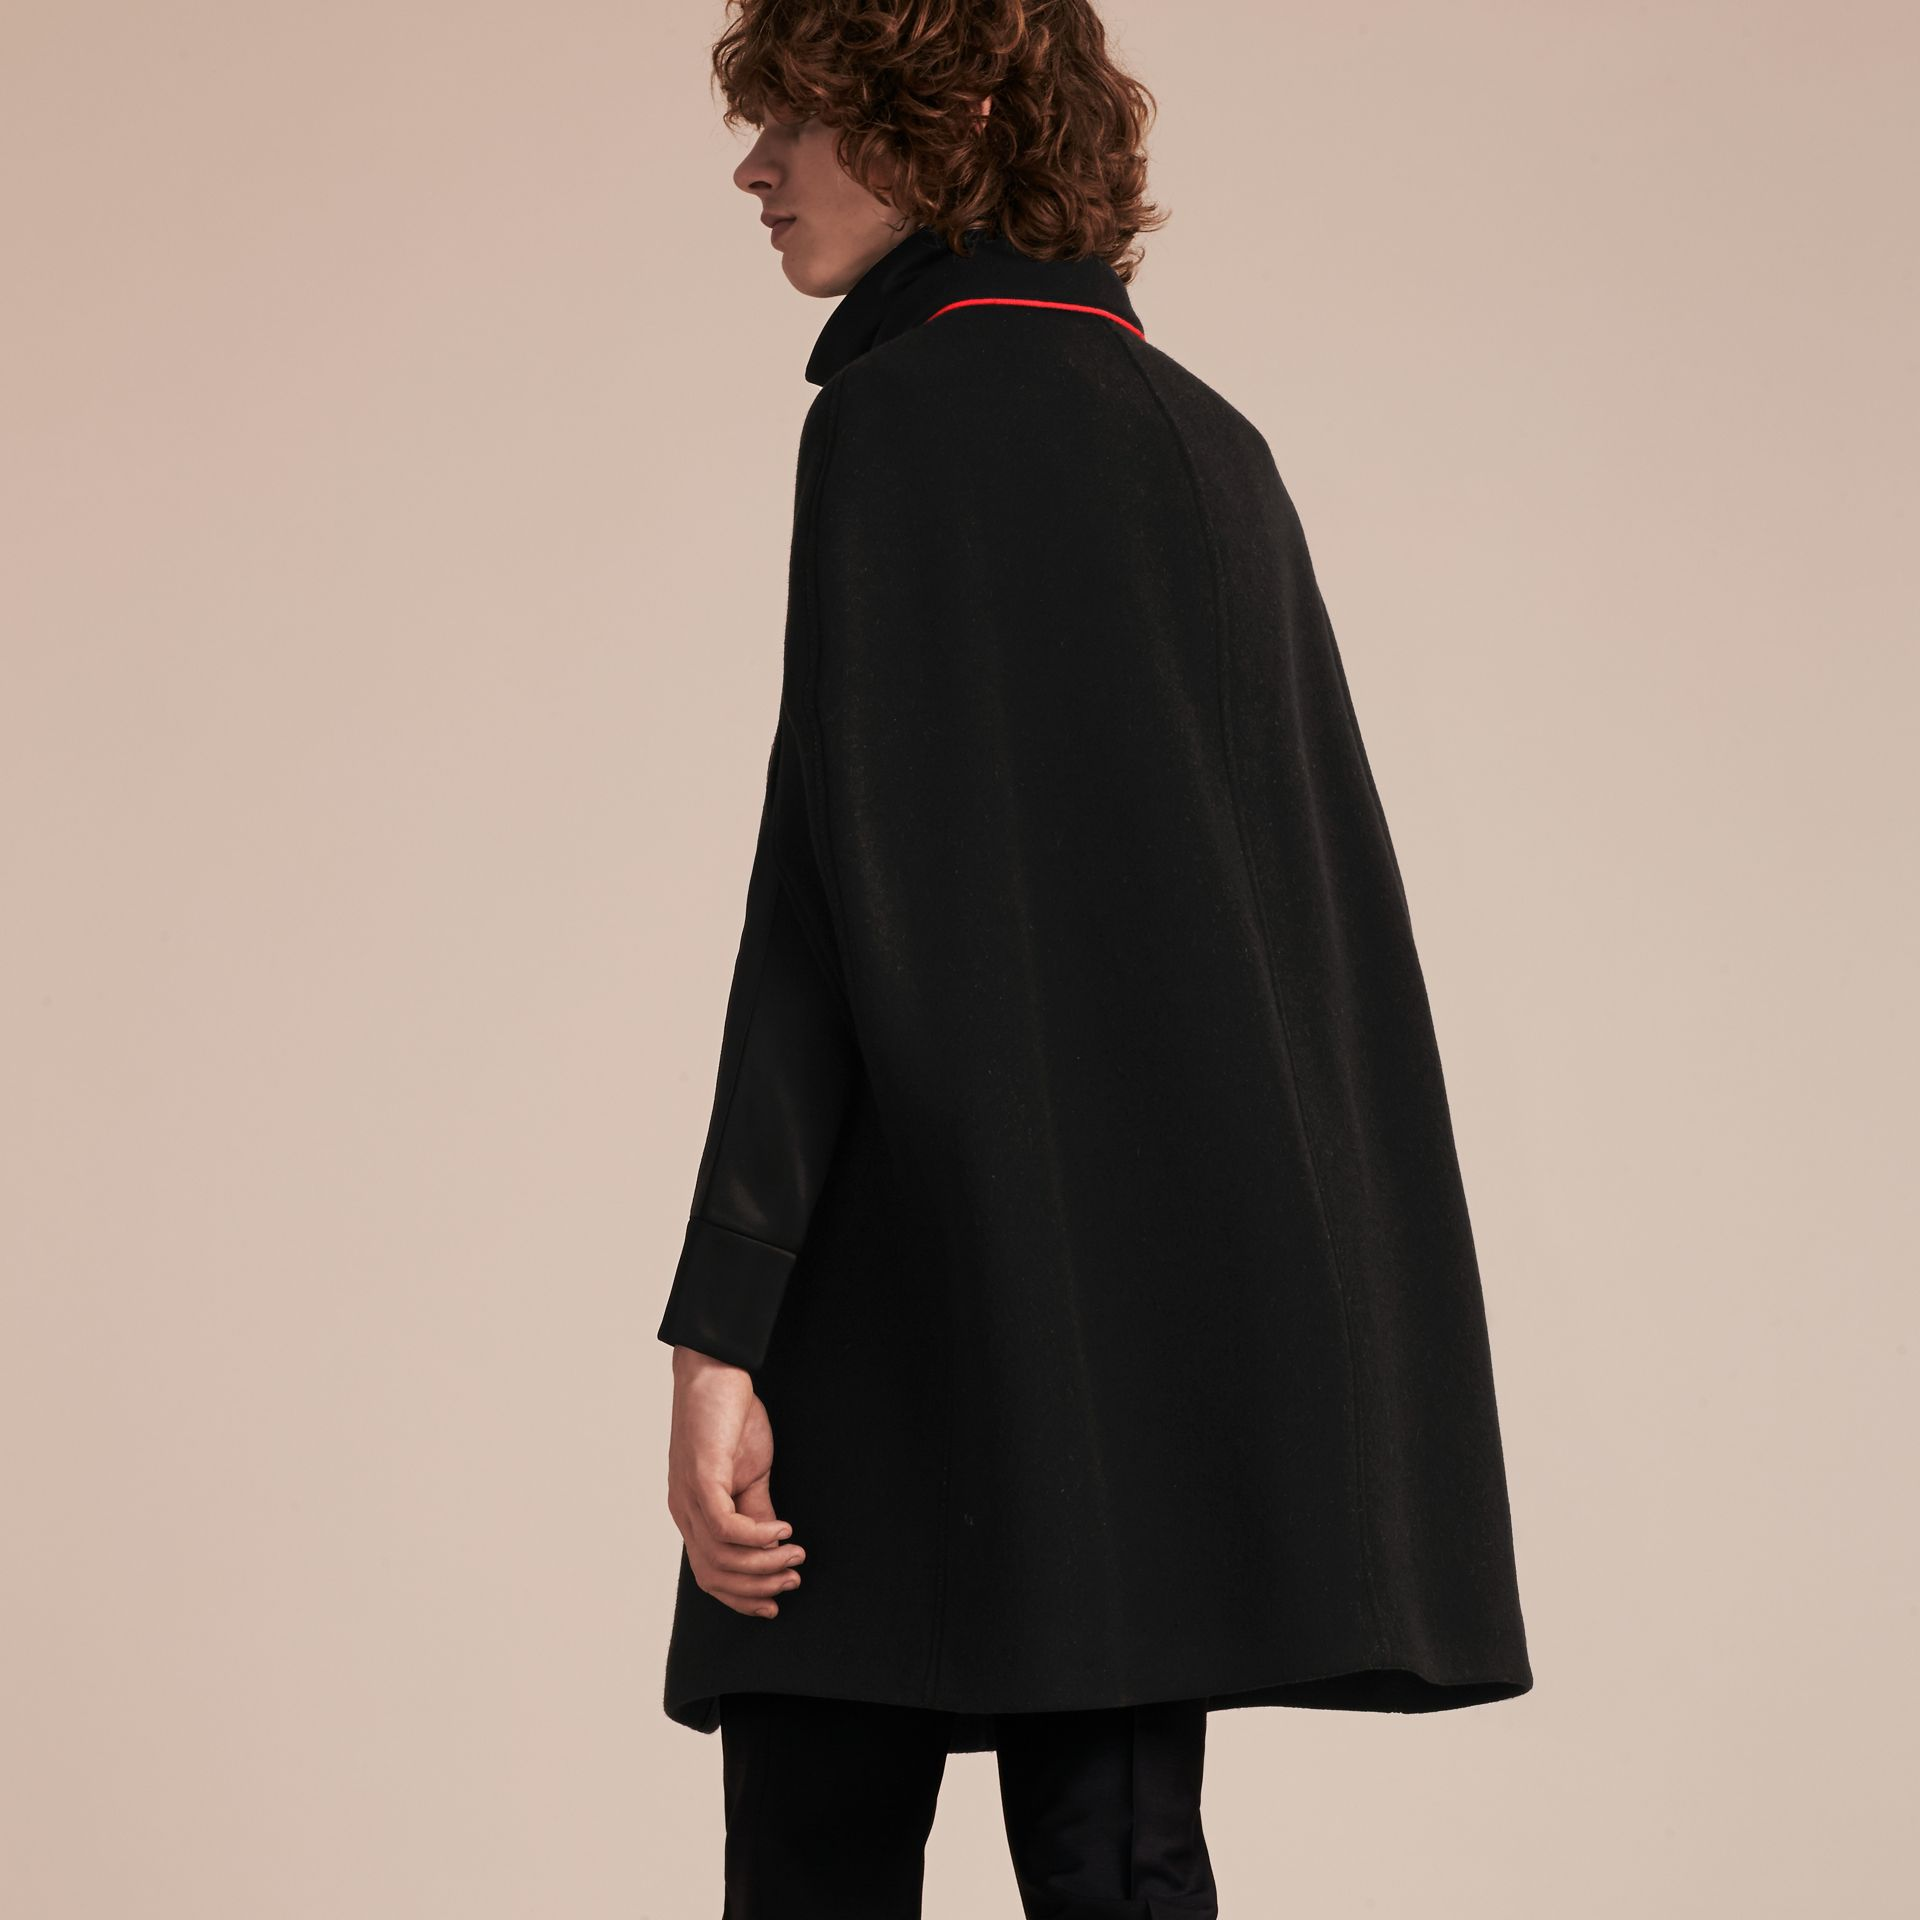 Black Wool Cashmere Blend Military Cape Coat - gallery image 3